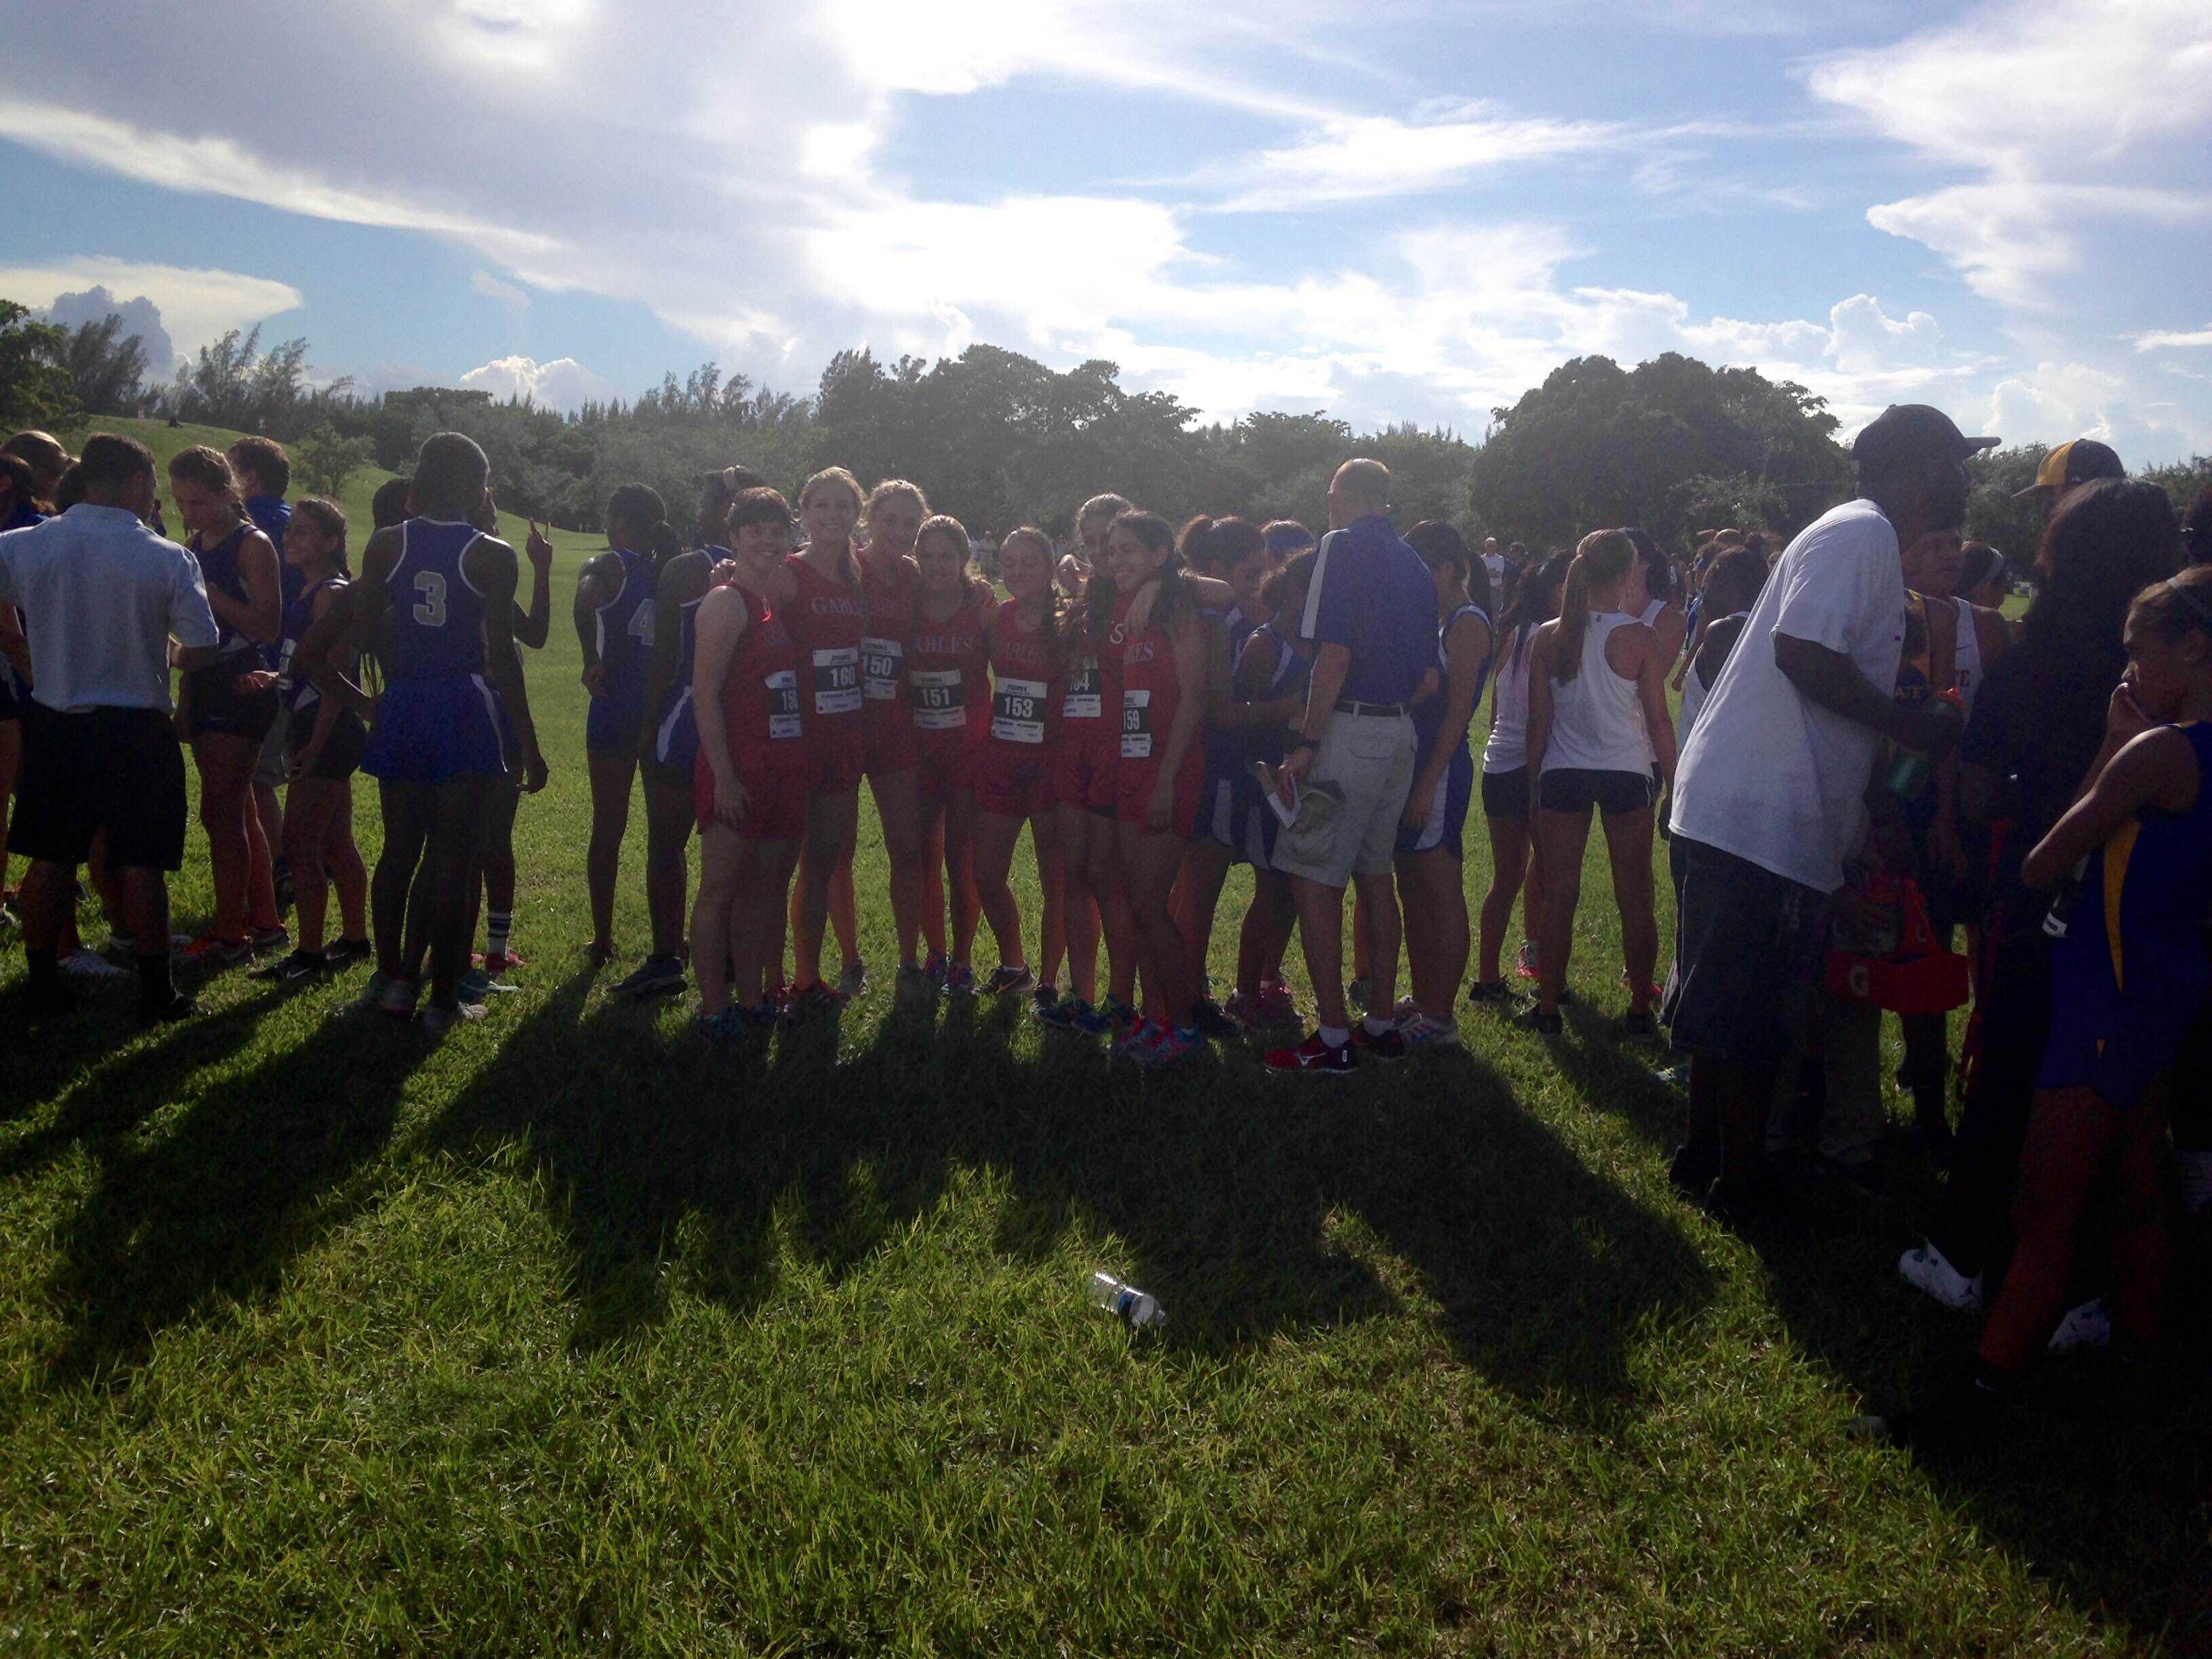 The girls' cross country team huddle for the meet.